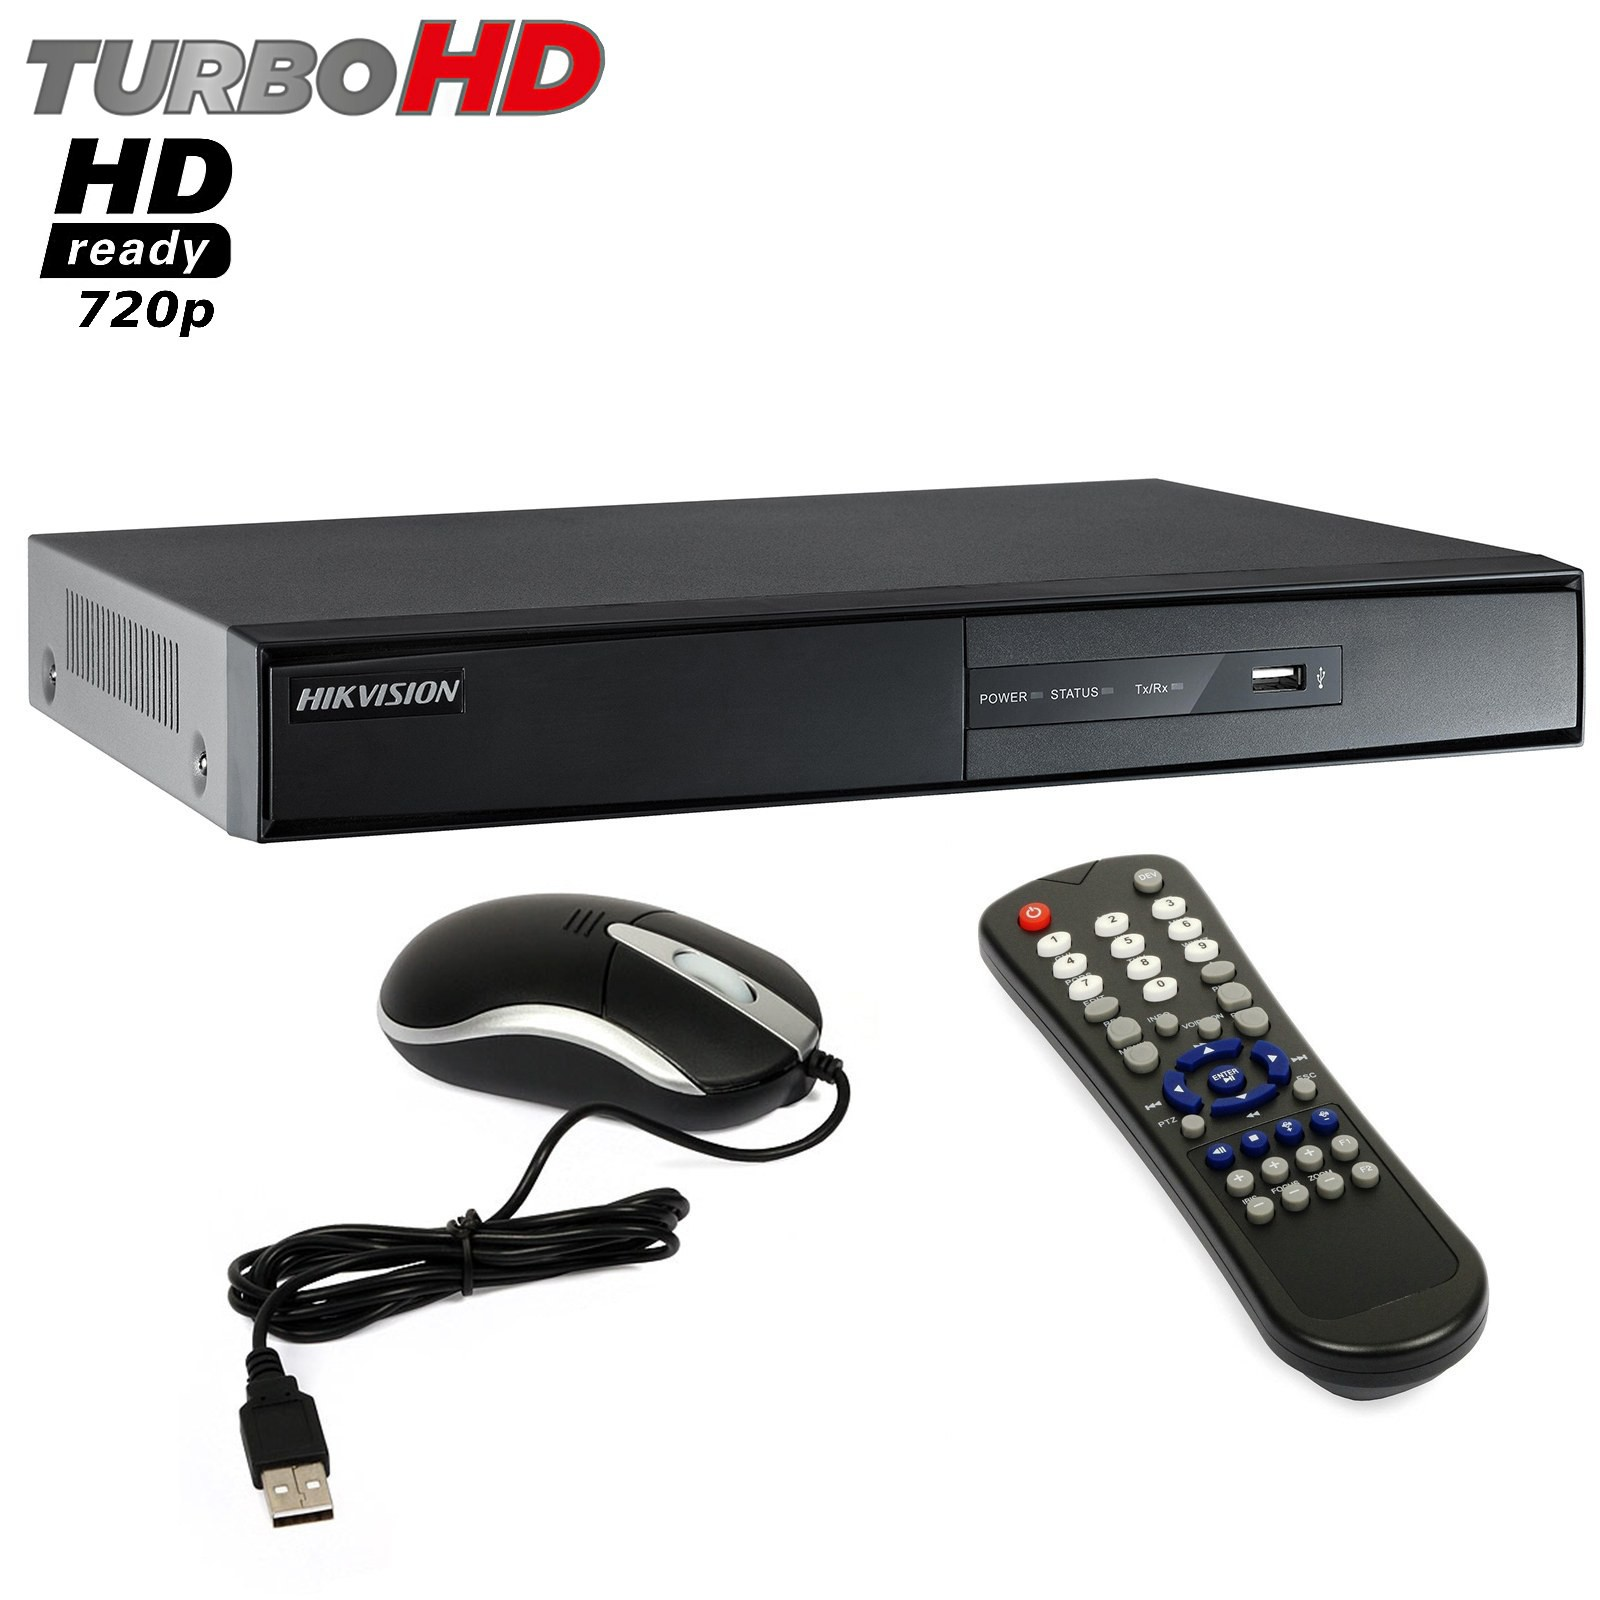 Dvr 16 Canali HIKVISION Turbo HD Ready 720P VGA HDMI H.264 LAN DS-7216HGHI-SH